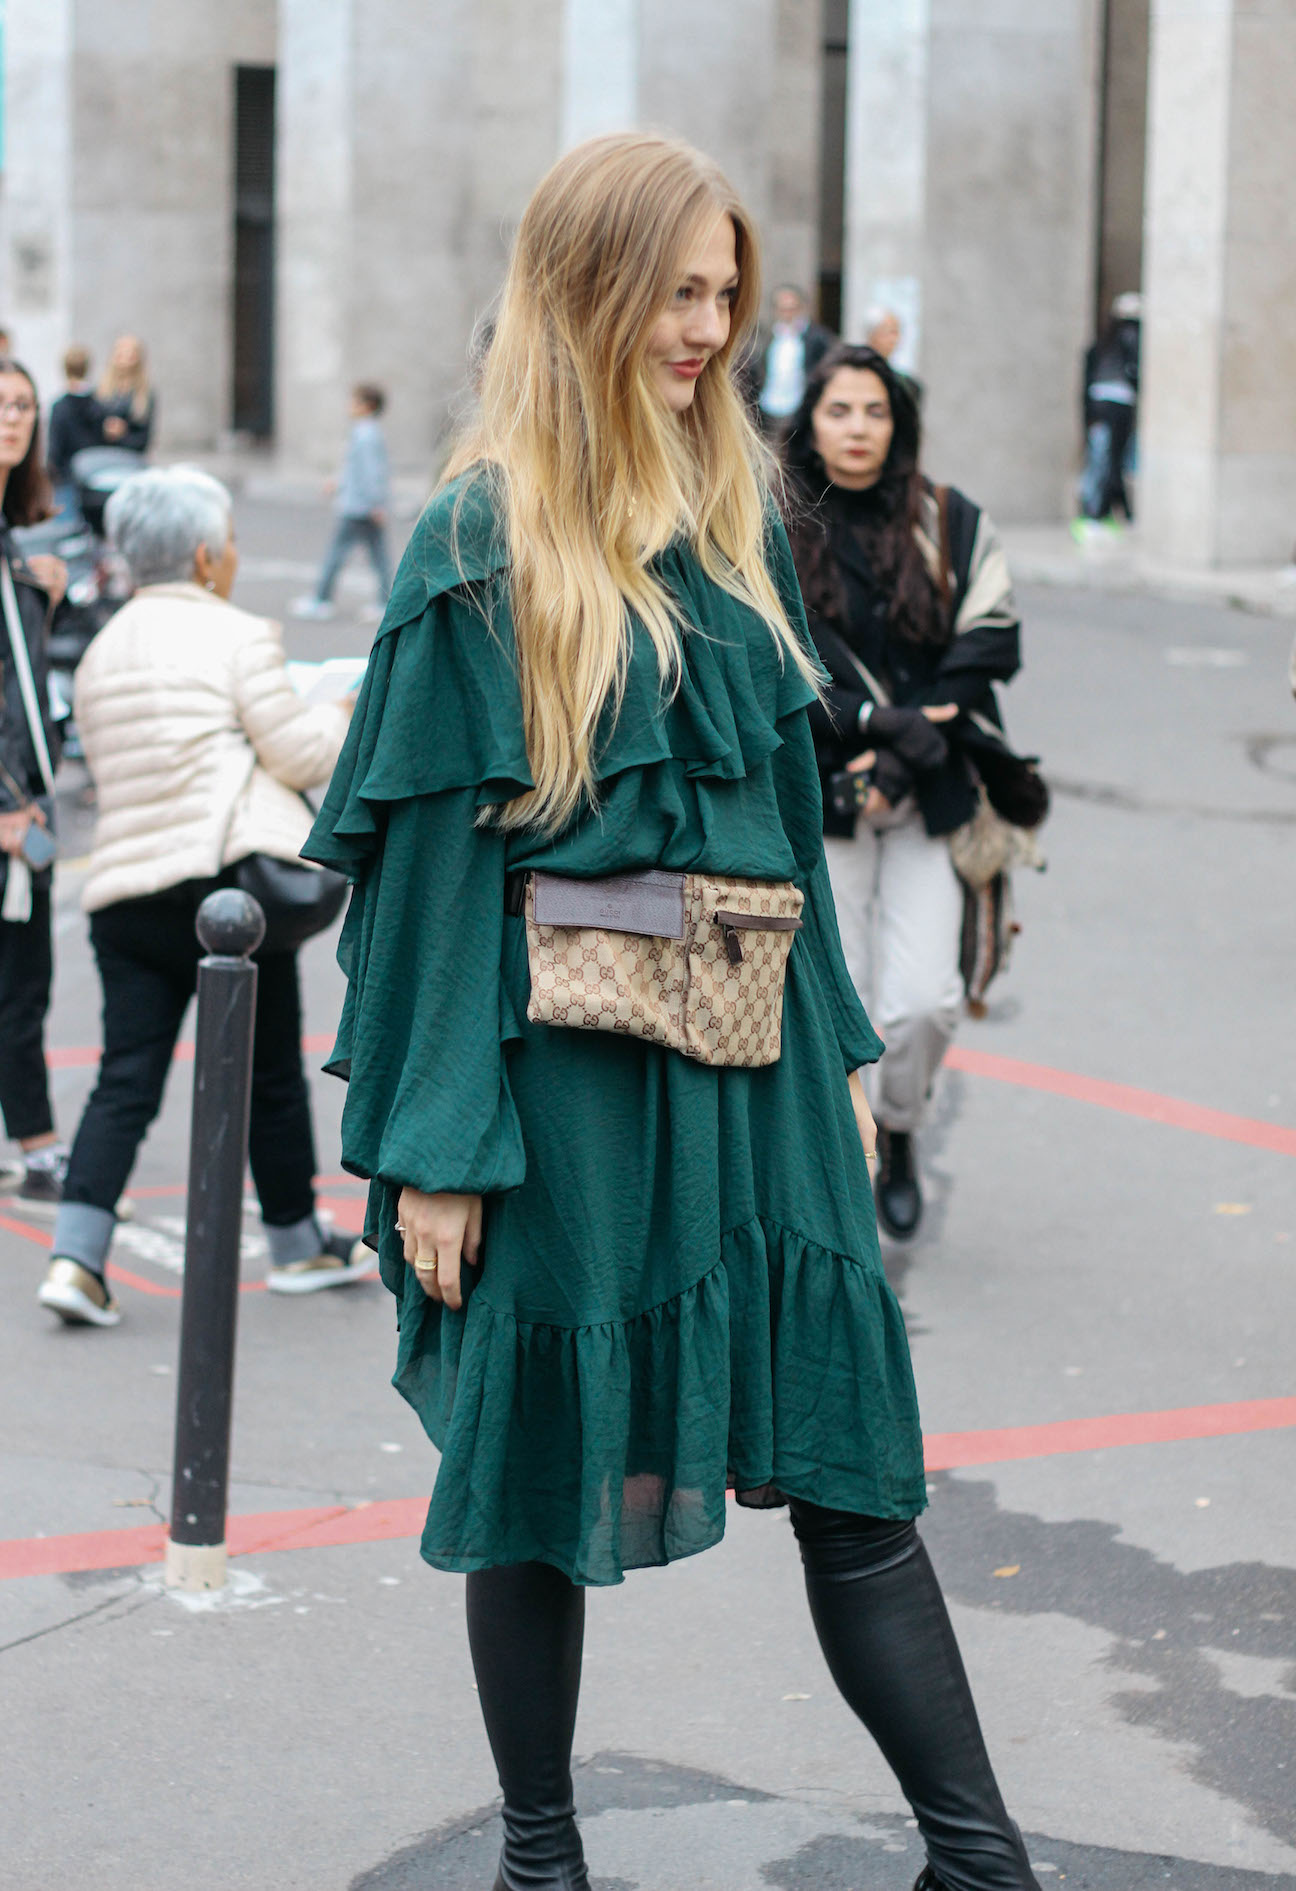 Floortjeloves, pfw, rahul mishra, paris, paris fashion week, paris fashionweek, fashion week, fashionweek, gucci, agl, fannypack, beltbag, weekday, dress, knee boots, over the knee boots, belt bag, show